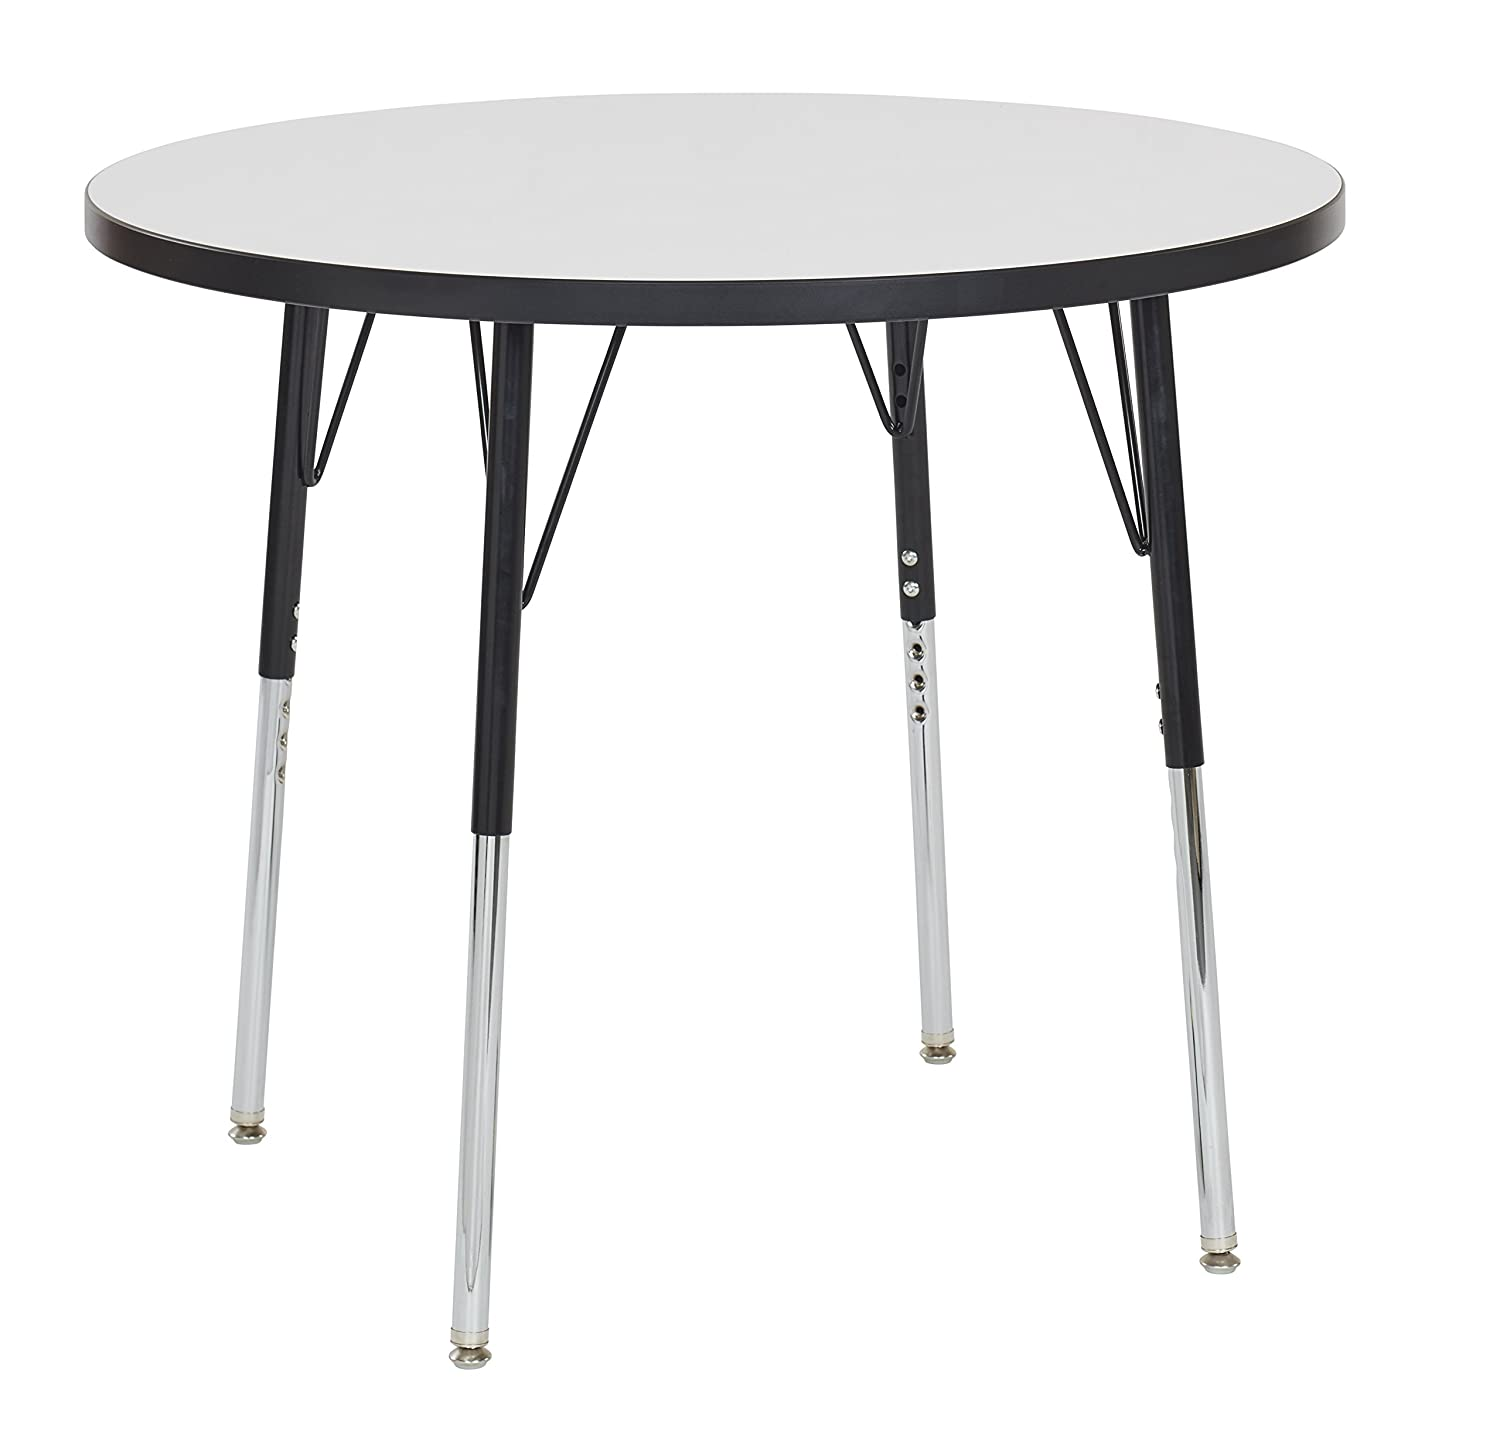 "ECR4Kids 30"" Round Dry Erase Adjustable Activity Table, Chunky Legs, 15-24"" H (Black Edge/Black Legs) ELR-14621-DEBKBKCH"